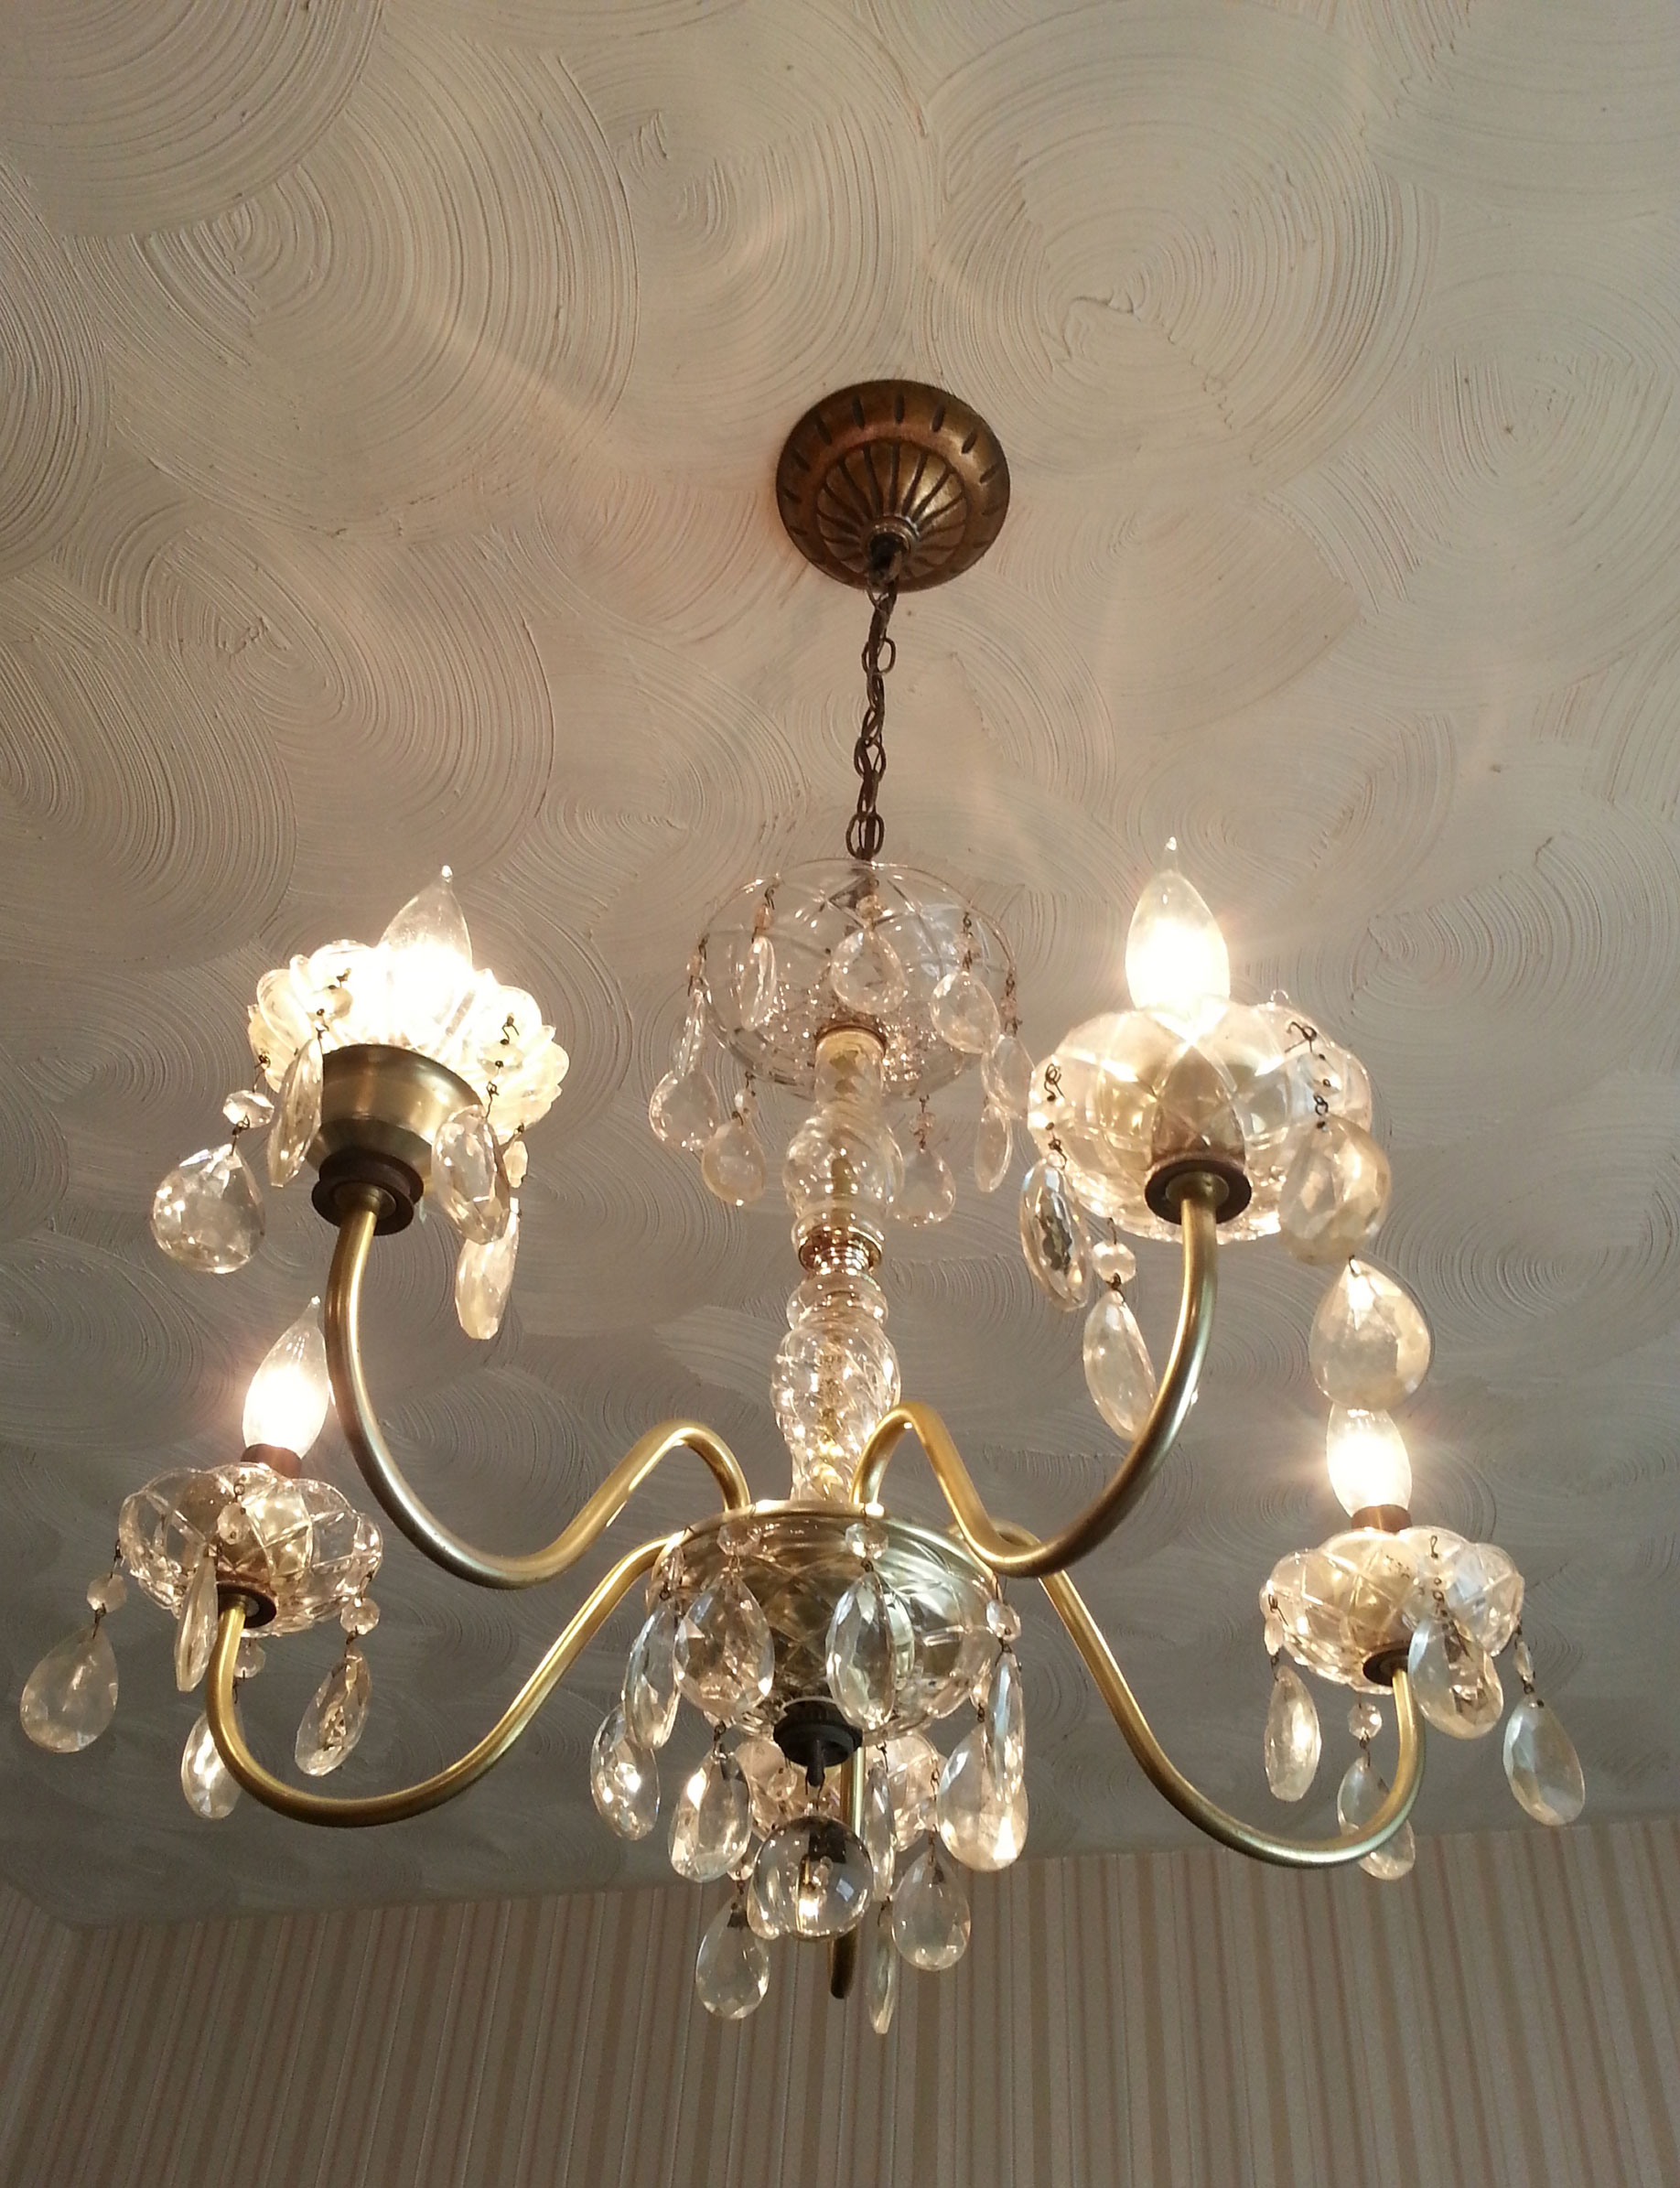 Wendy Wu of Bethesda, Md., figured out how to rewire a chandelier after enrolling in Bill Kinneary's workshop. This single chandelier, now hanging in her dining room, is cobbled together from two purchases she made at Community Forklift.